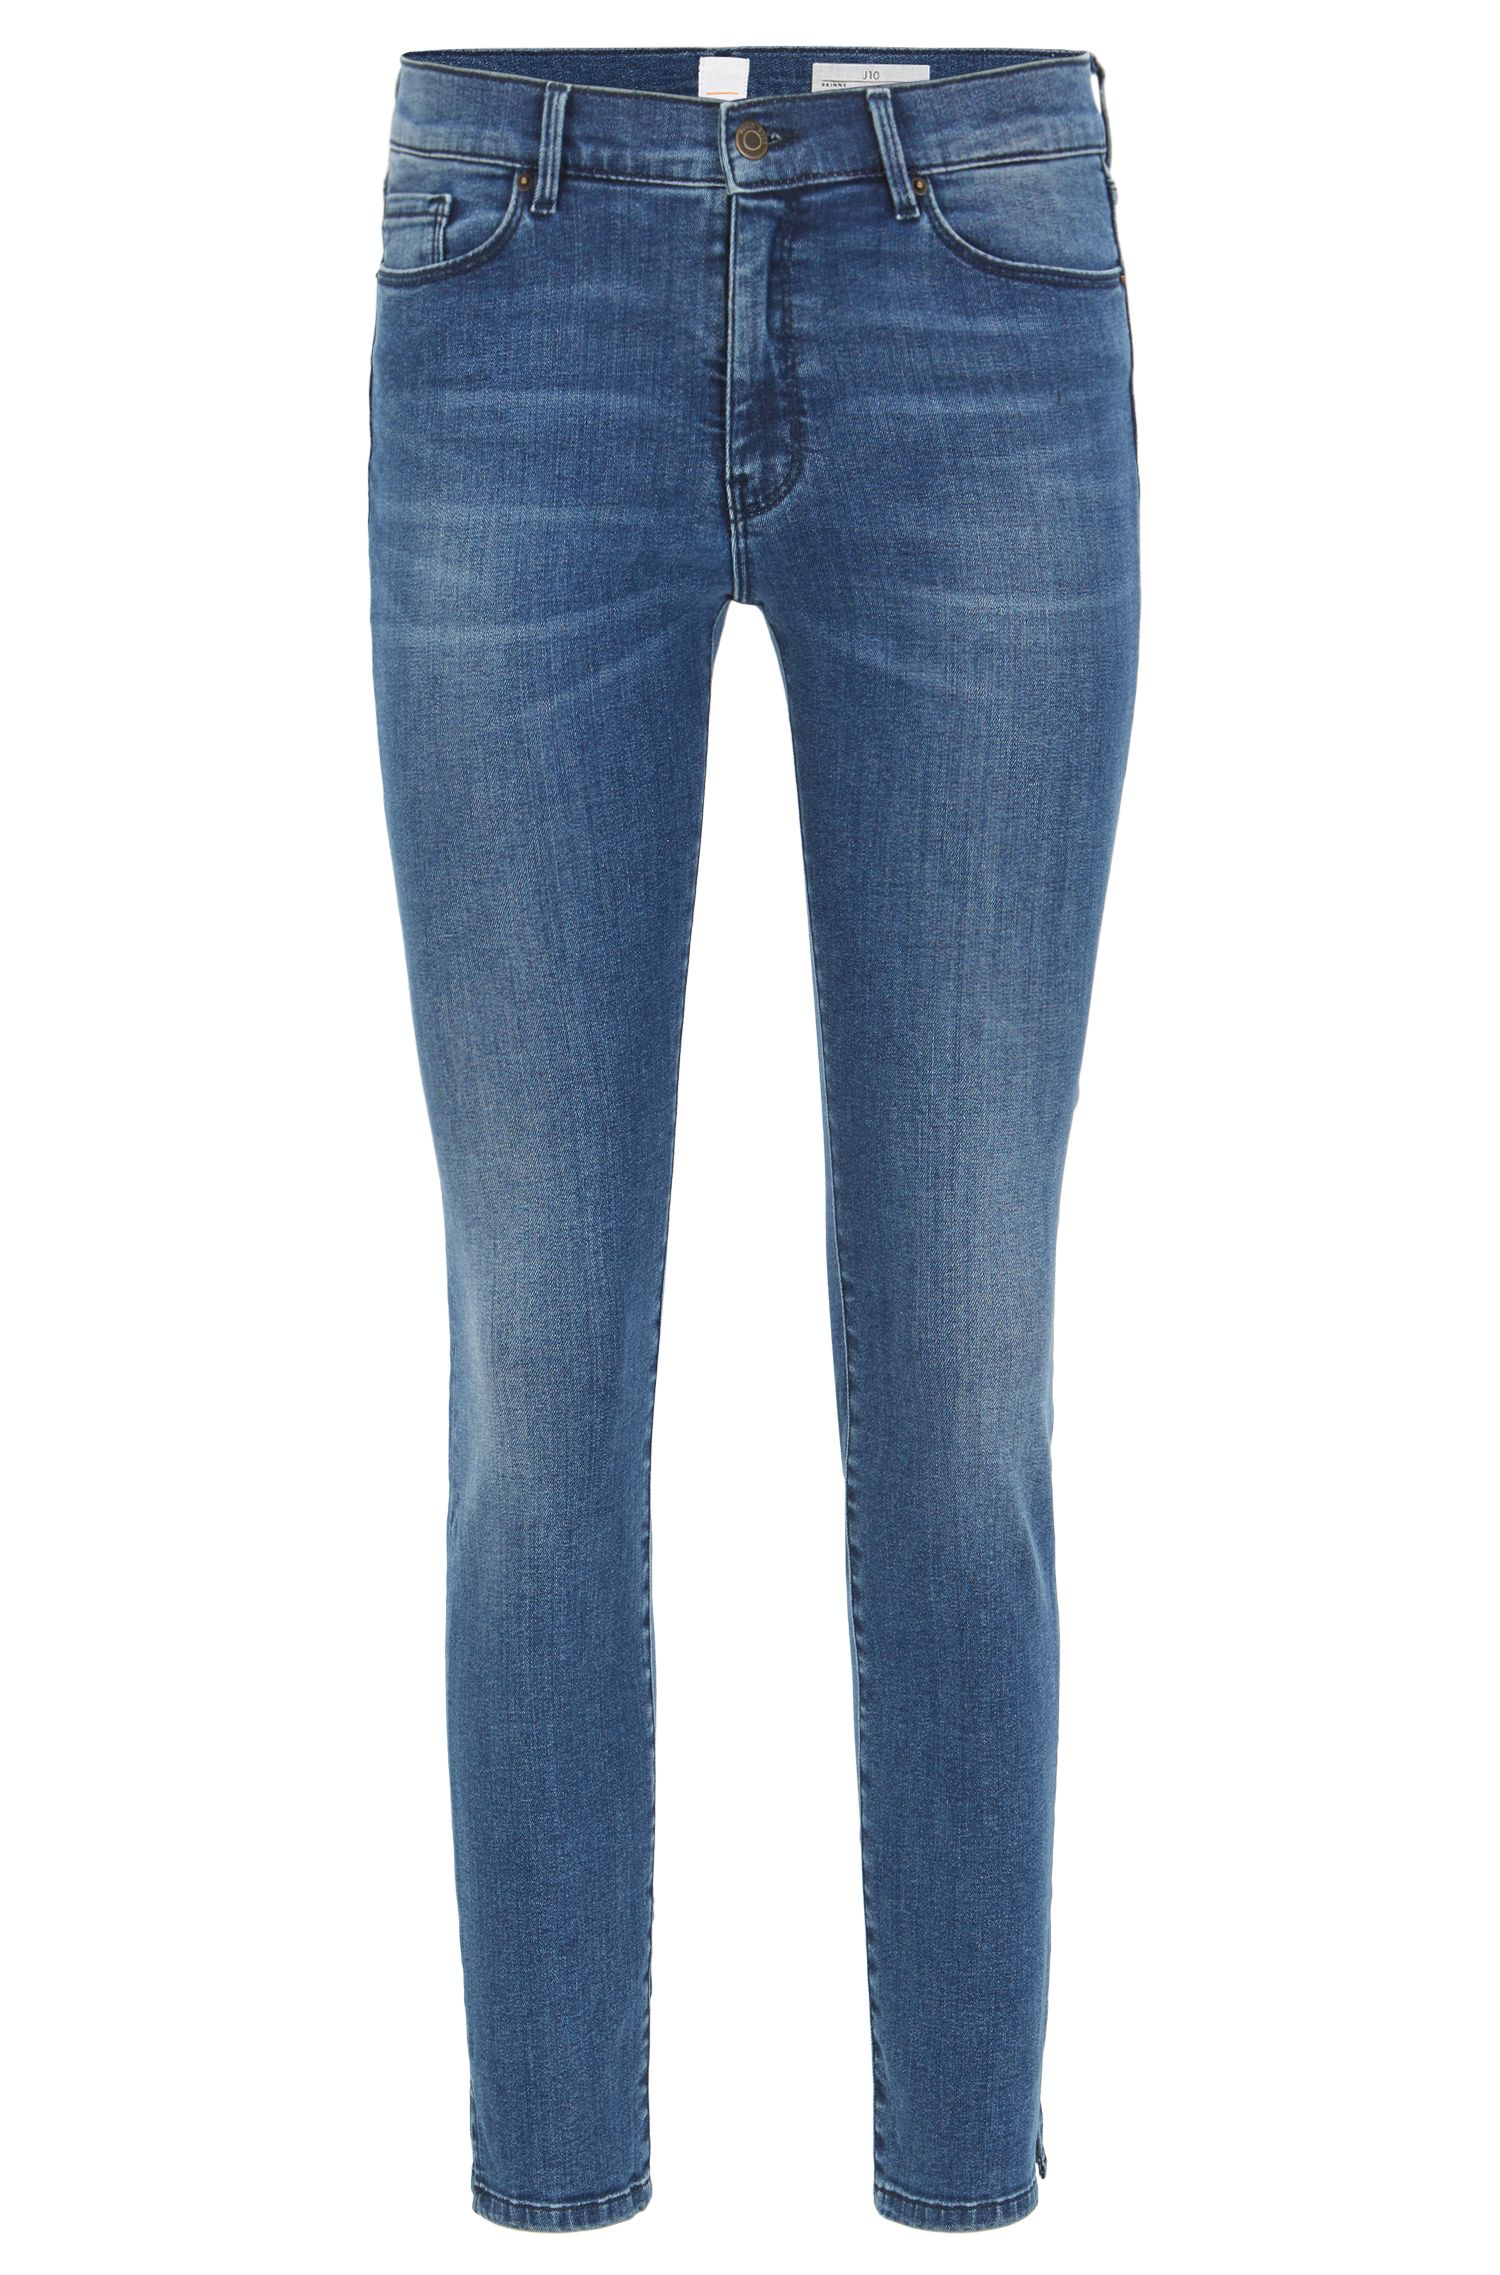 Jeans skinny fit in denim tendente al rosso